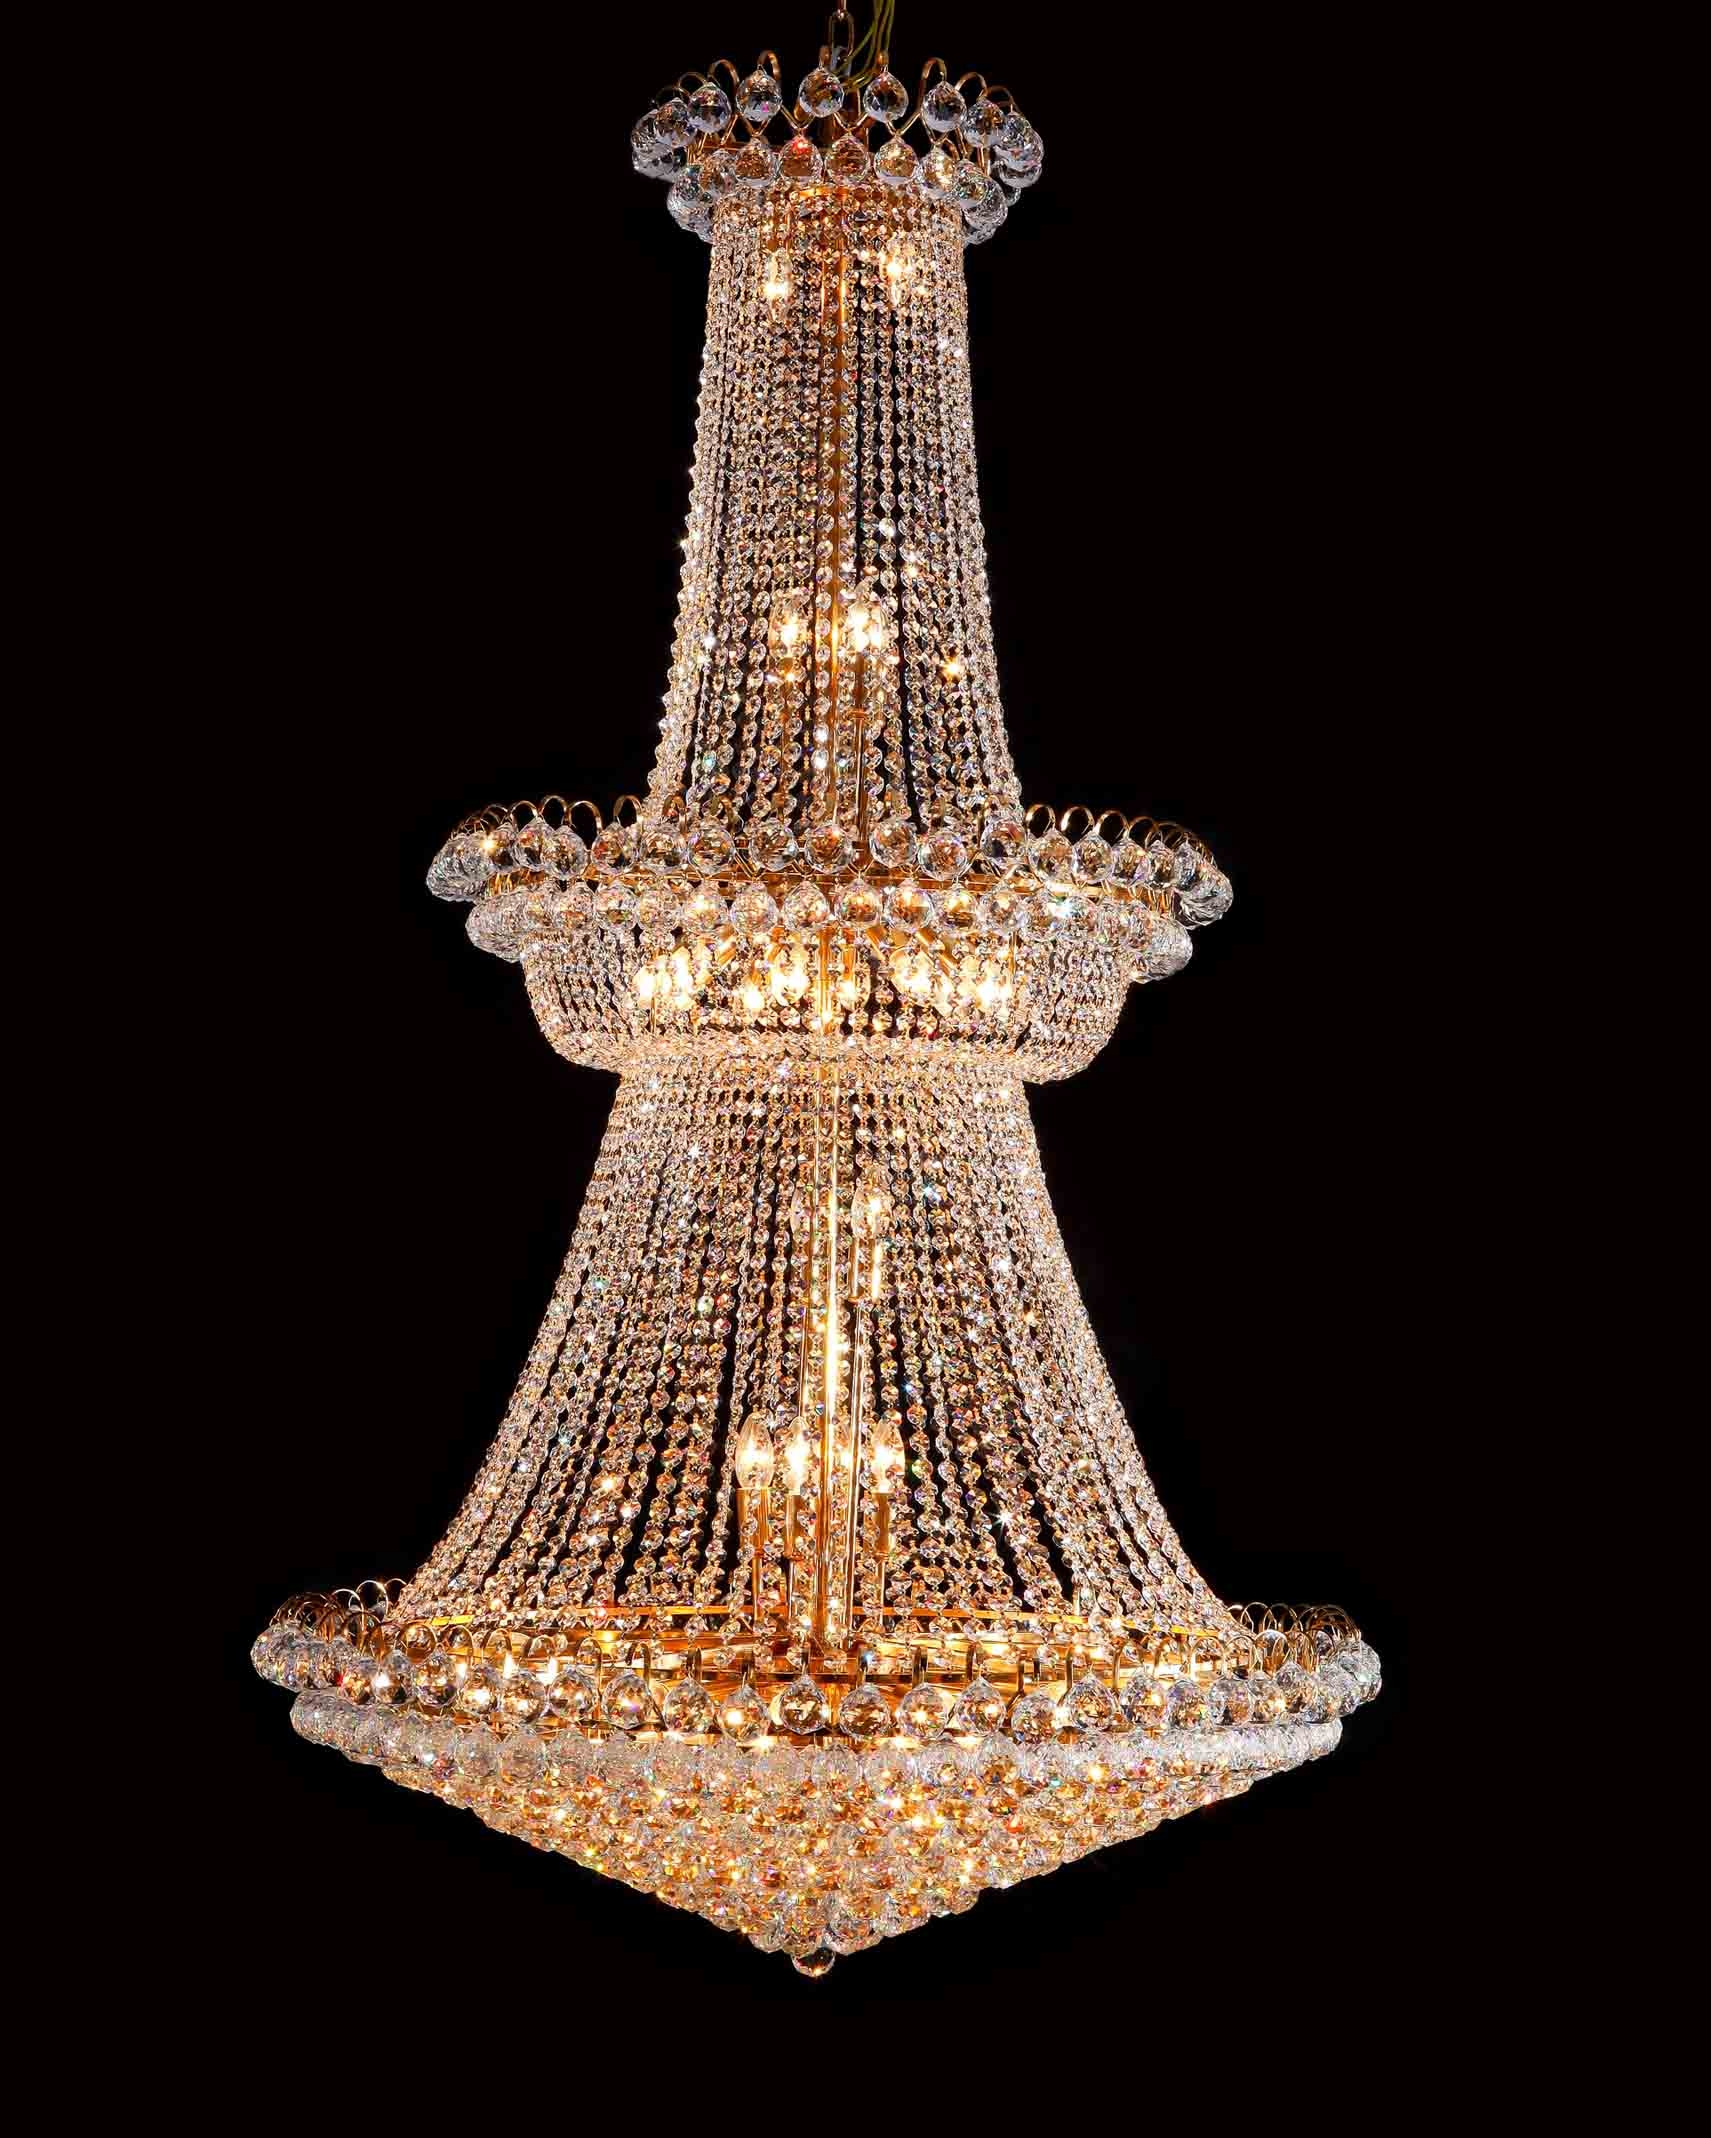 Chandelier Awesome Large Crystal Chandelier Large Round Crystal Throughout Large Crystal Chandeliers (#2 of 12)